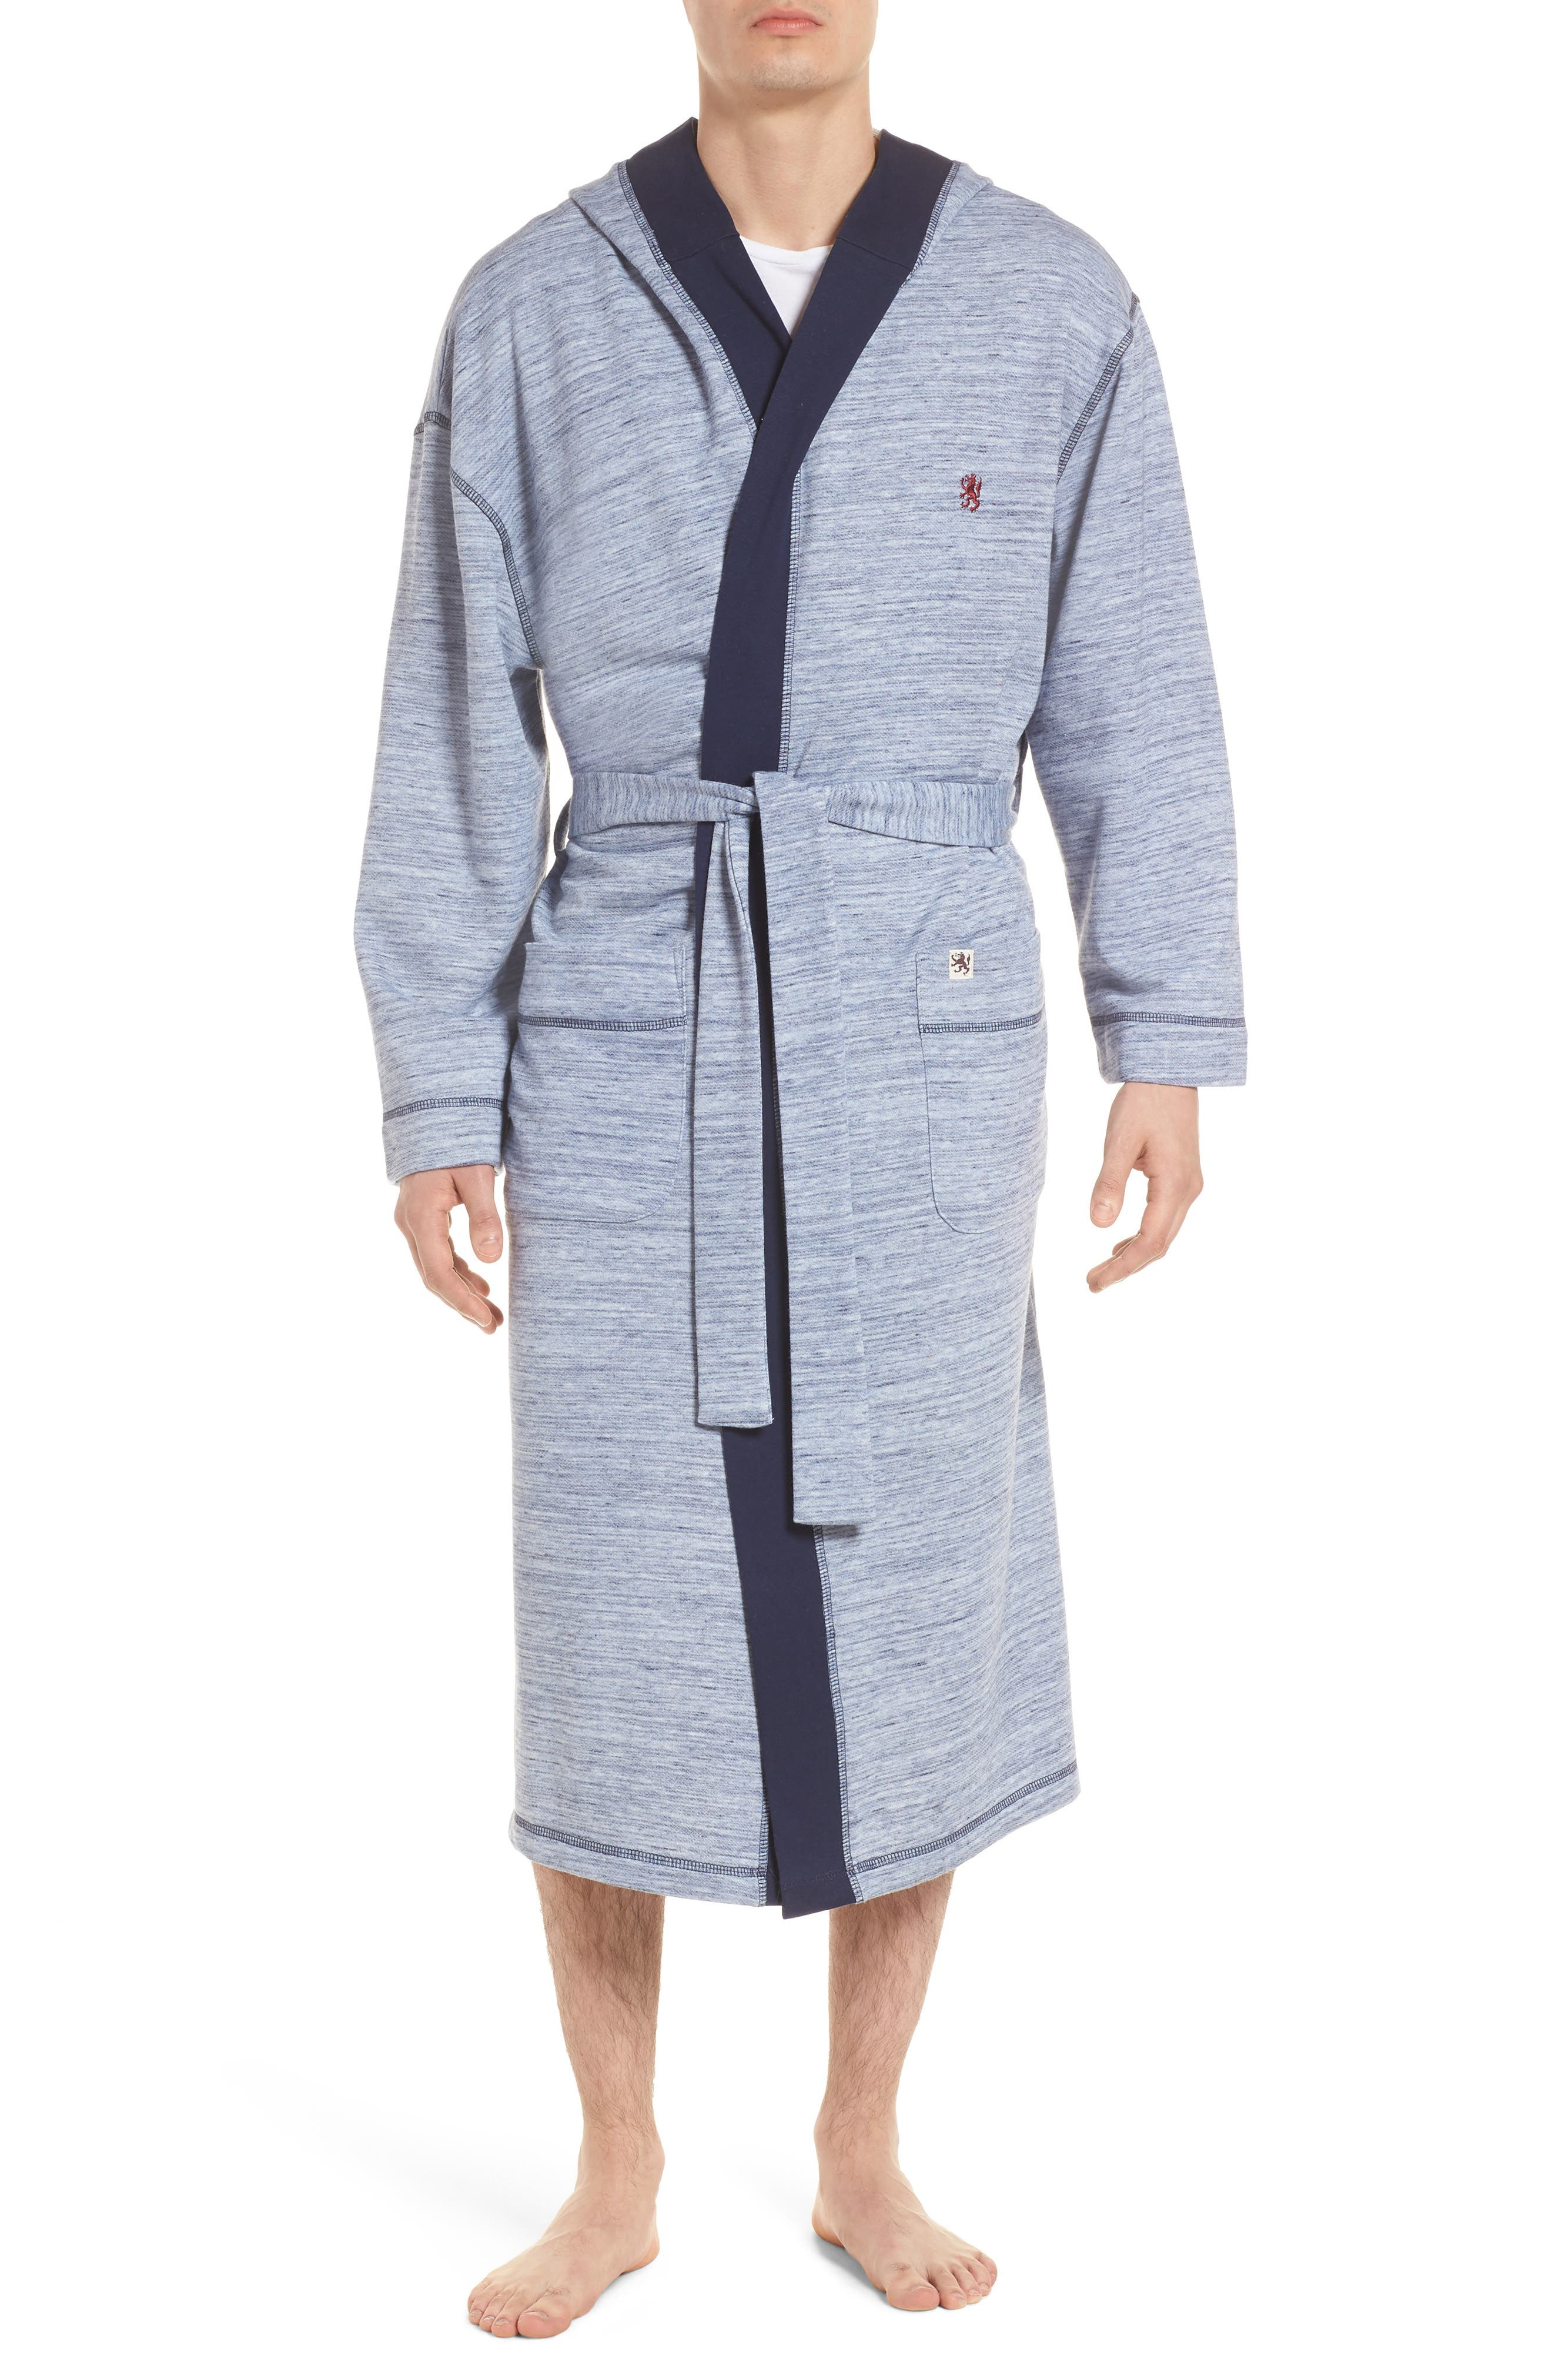 Swept In Waves Robe,                             Main thumbnail 1, color,                             Alfresco French Terry